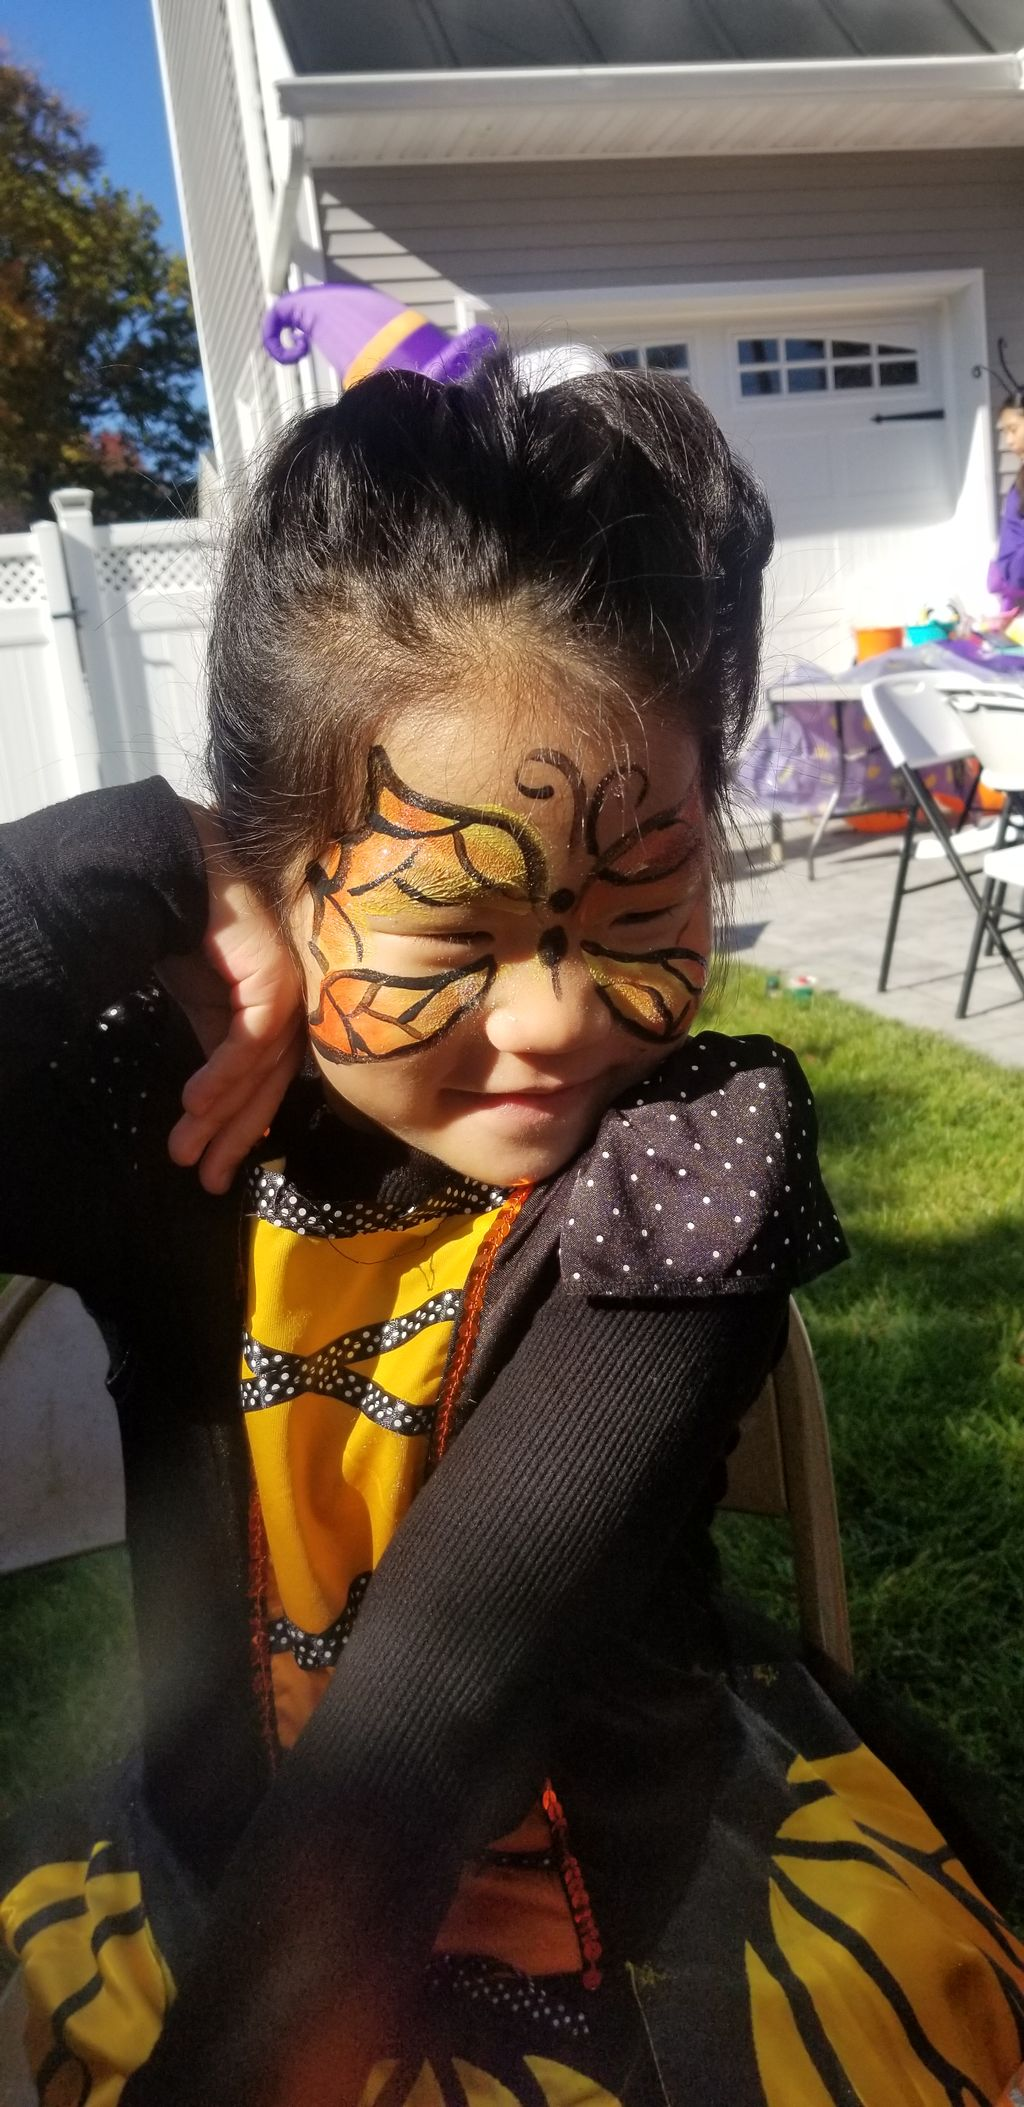 Face Painting for Community Event - River Edge 2020